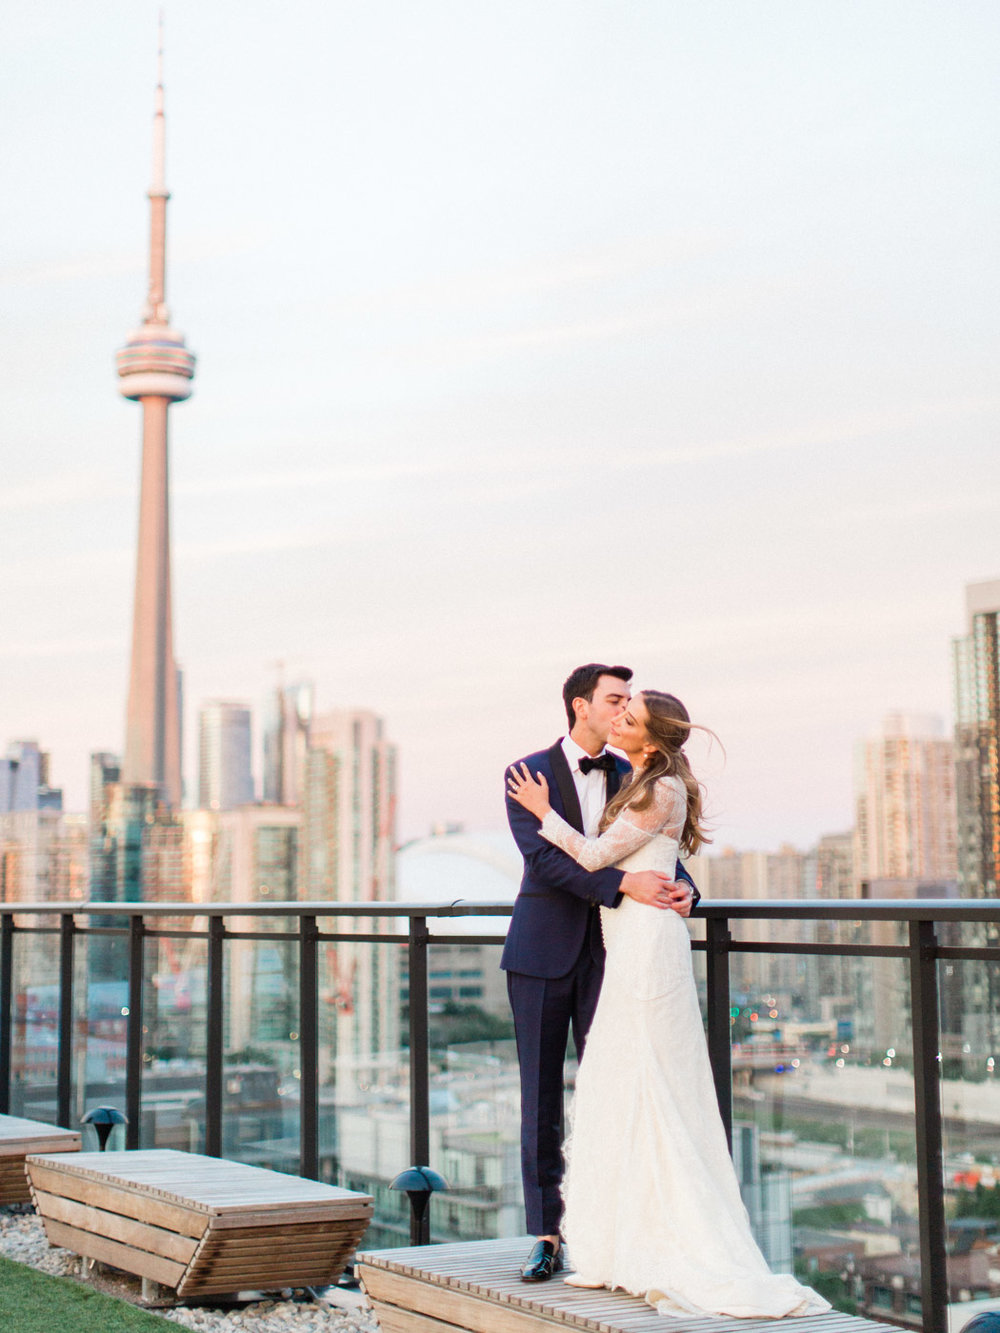 toronto-wedding-photographer-fine-art-documentary-classy-stylish-rooftop-lavelle-218.jpg